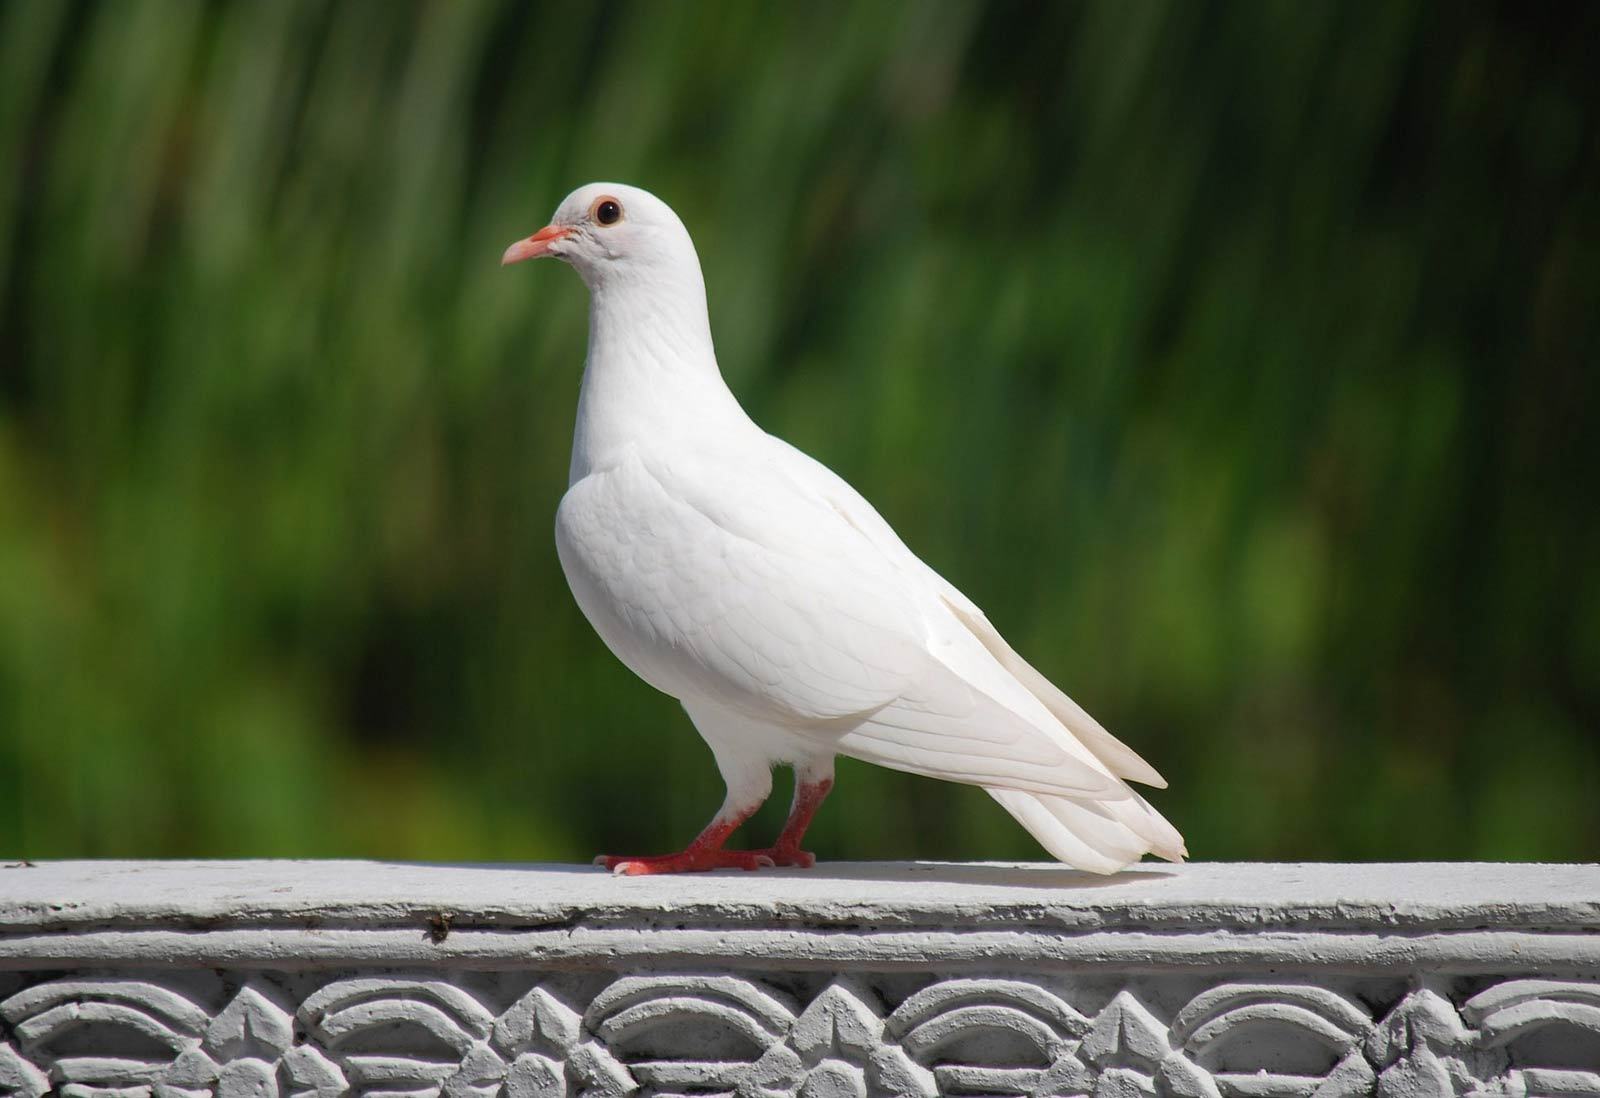 5 Things You Might Not Know About Pigeons Because Birds